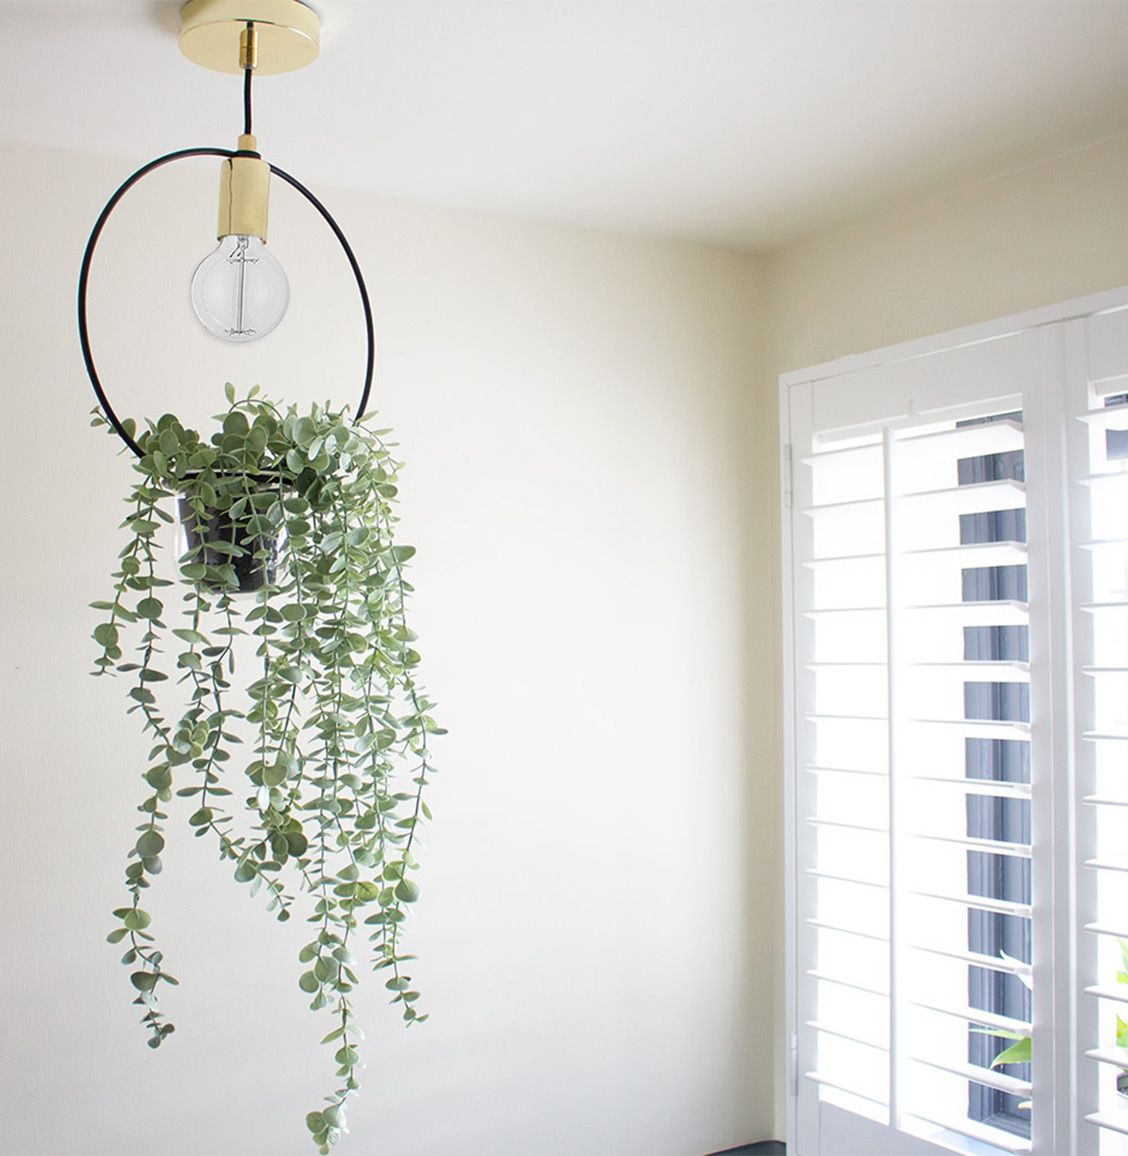 A photo of the hanging planter light fitting in the downstairs loo.